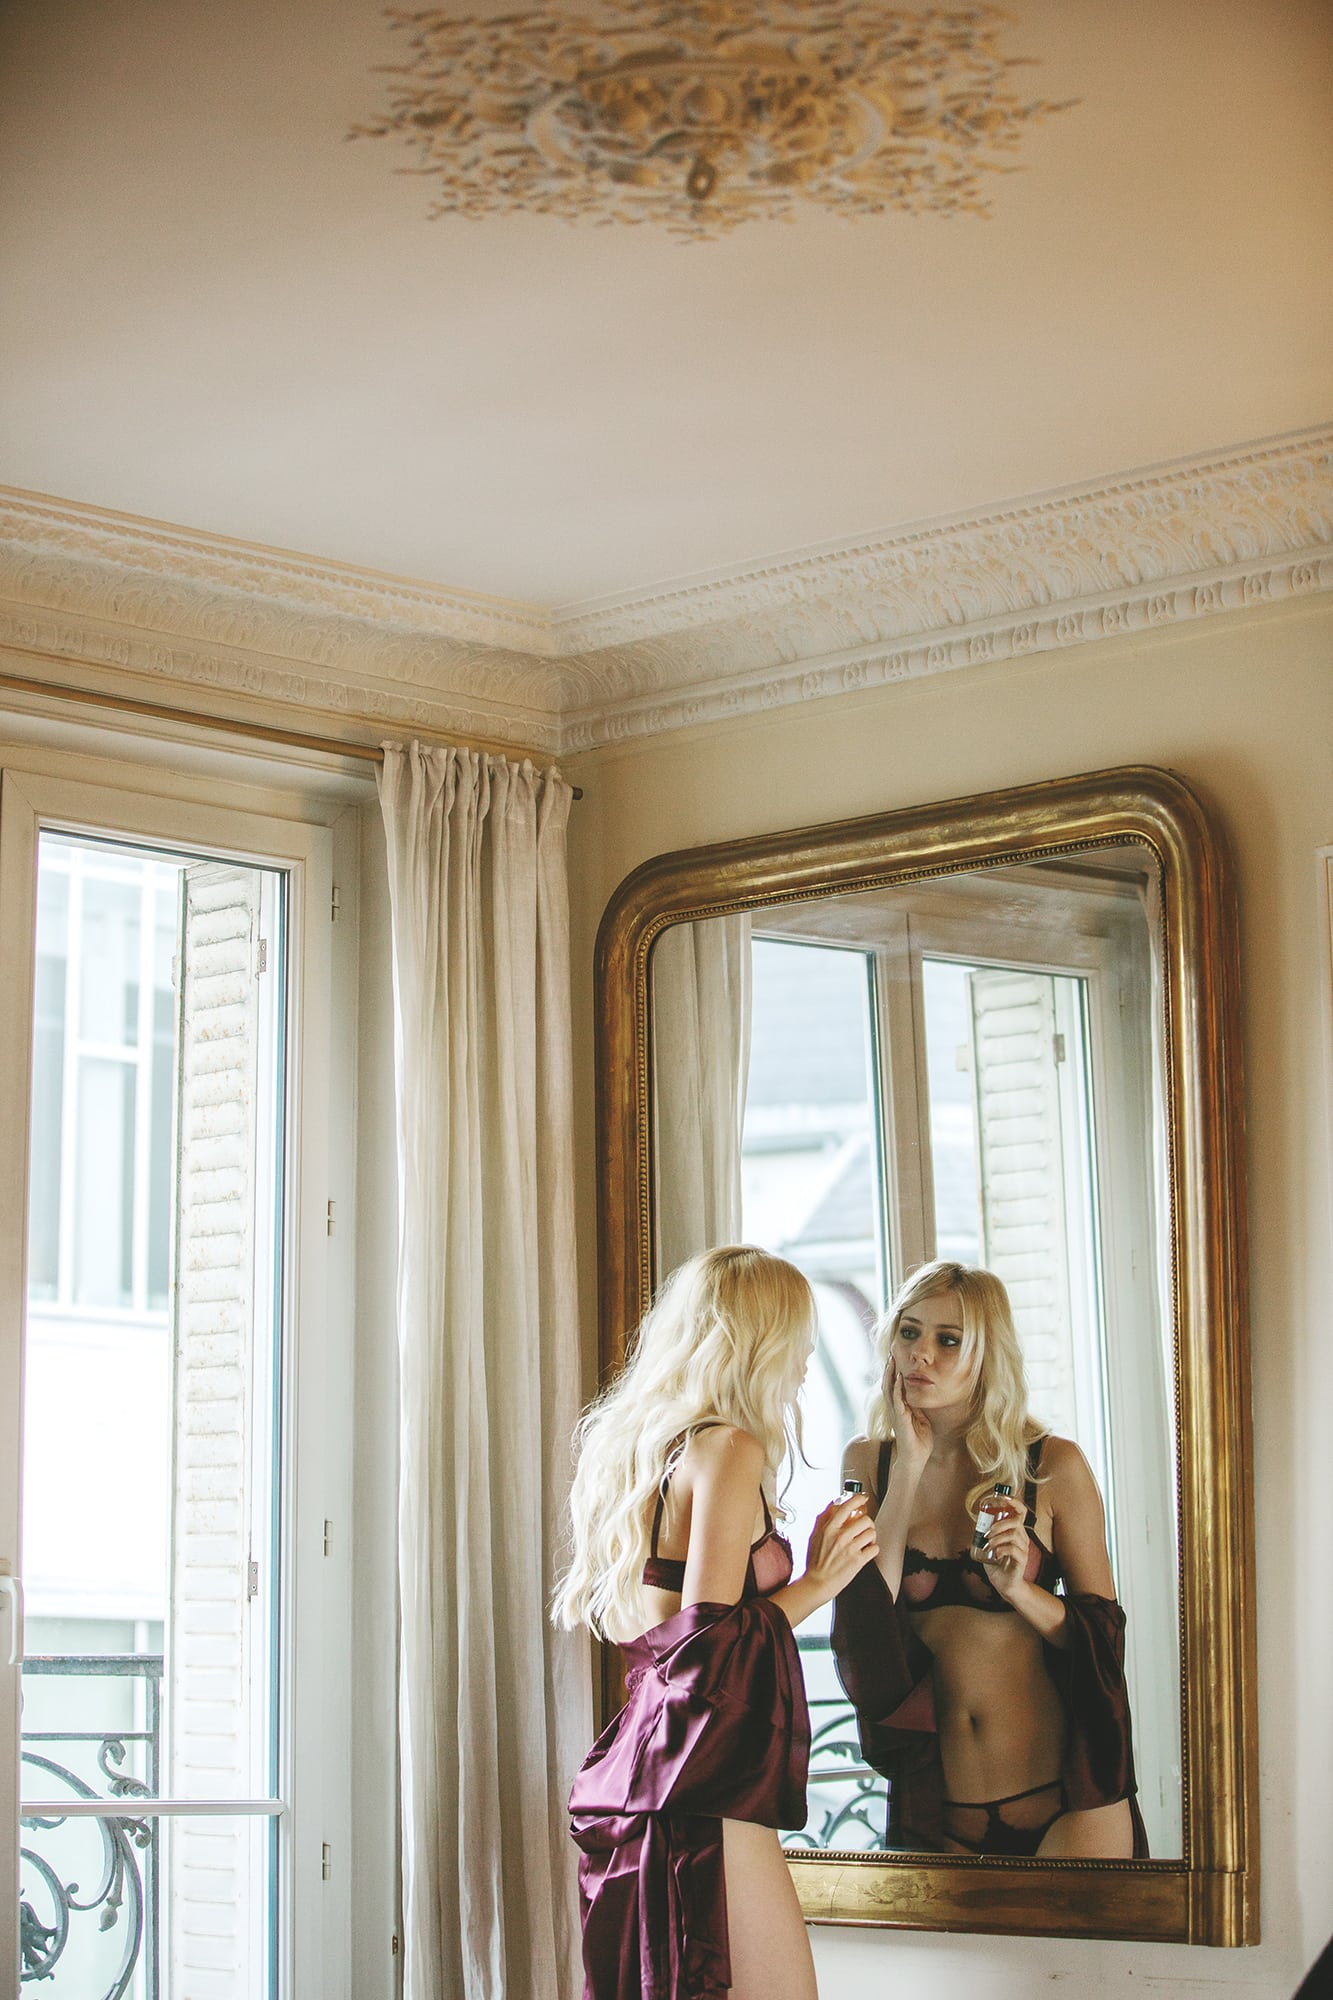 Sarah Loven - Jetsetlust.com // Paris Perfect Rentals Montmartre // Paris Travel Guide: Where to Stay